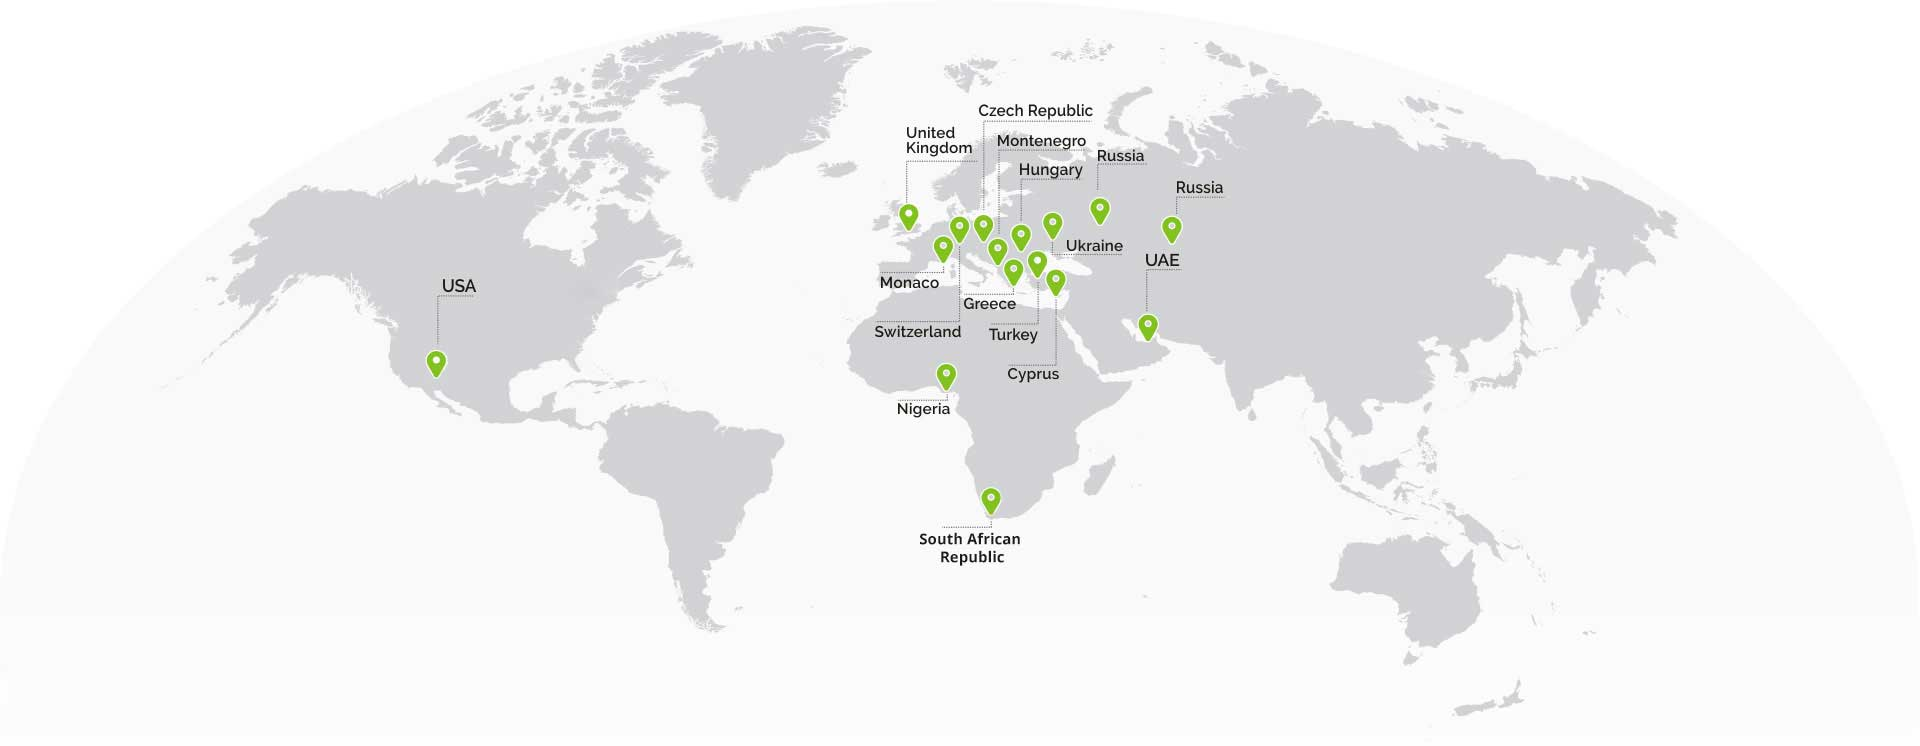 Discus Holdings offices in the world